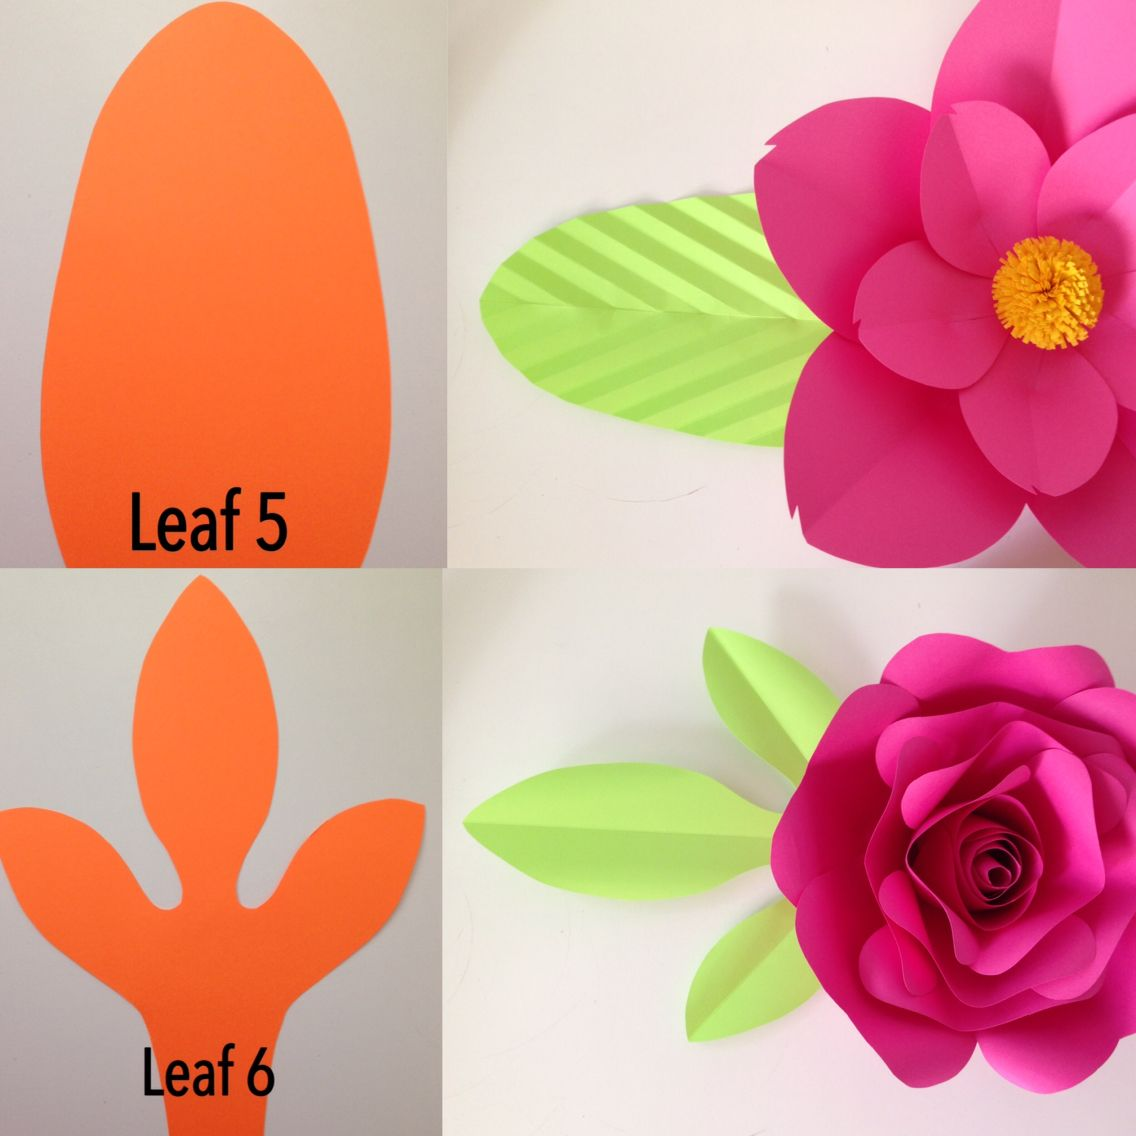 Paper Flowers Available For Purchase If You Would Like To Diy